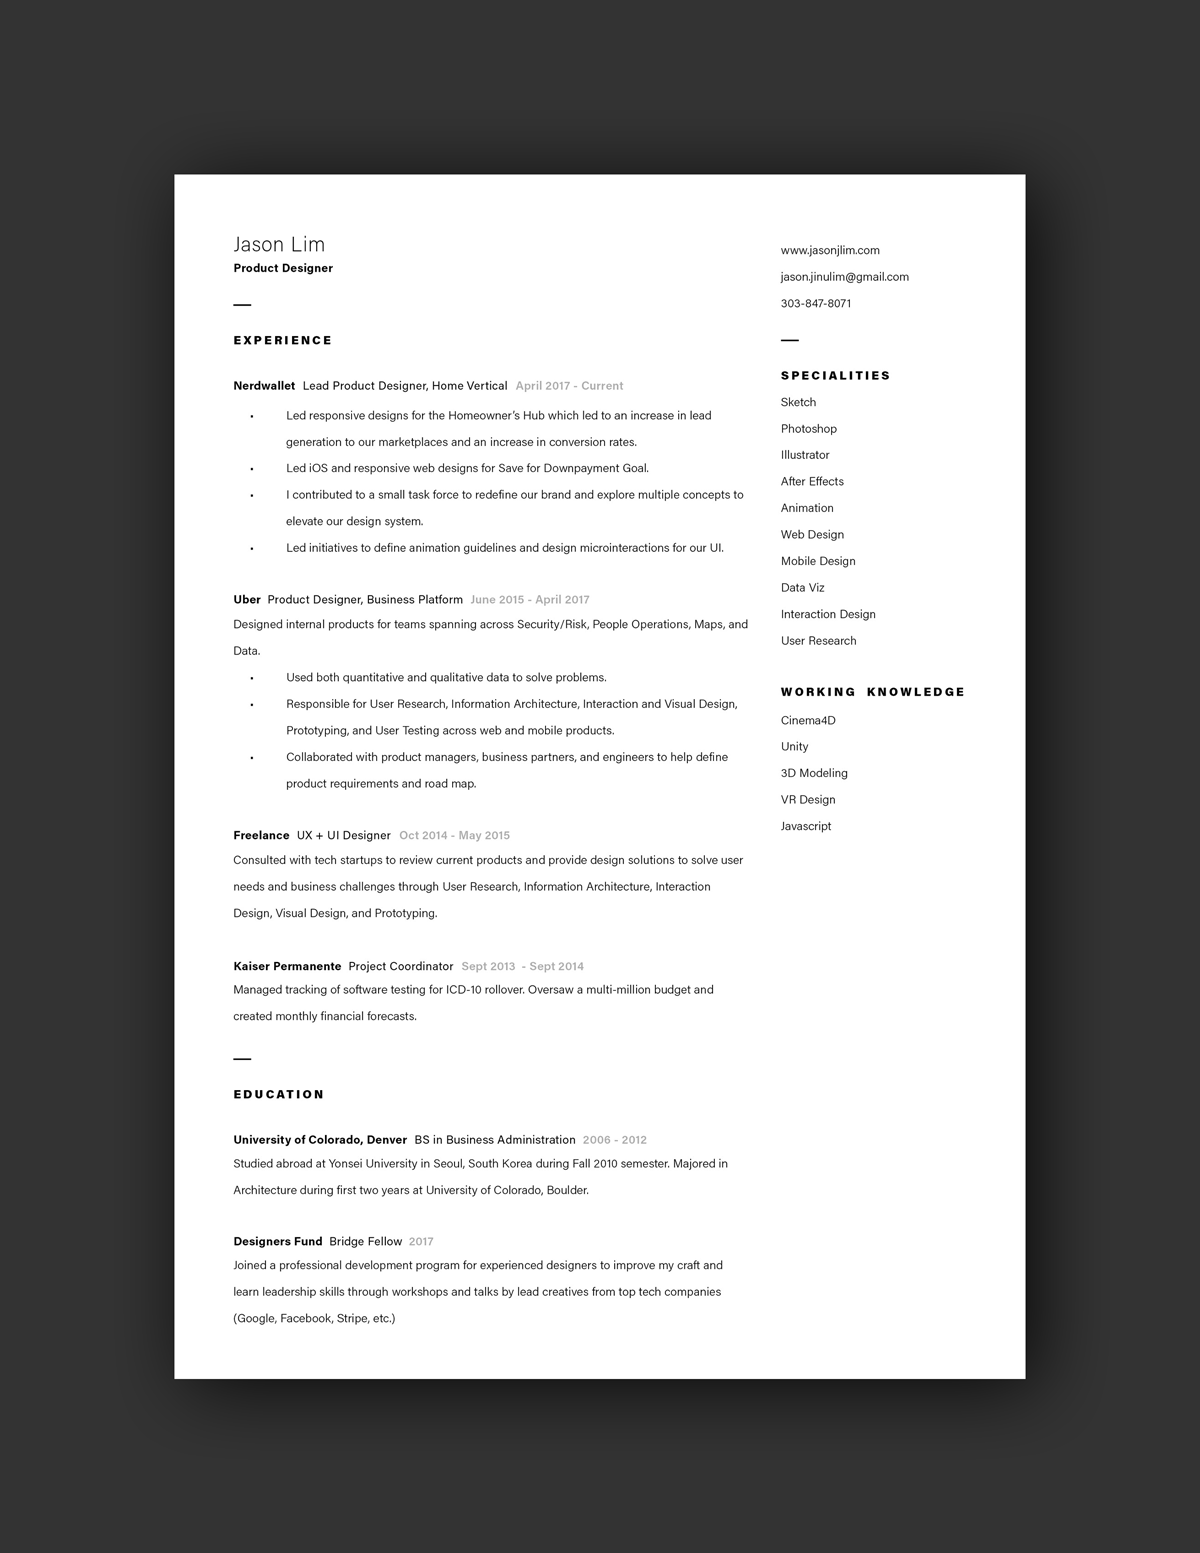 Example Resumes 21 Inspiring Ux Designer Resumes And Why They Work